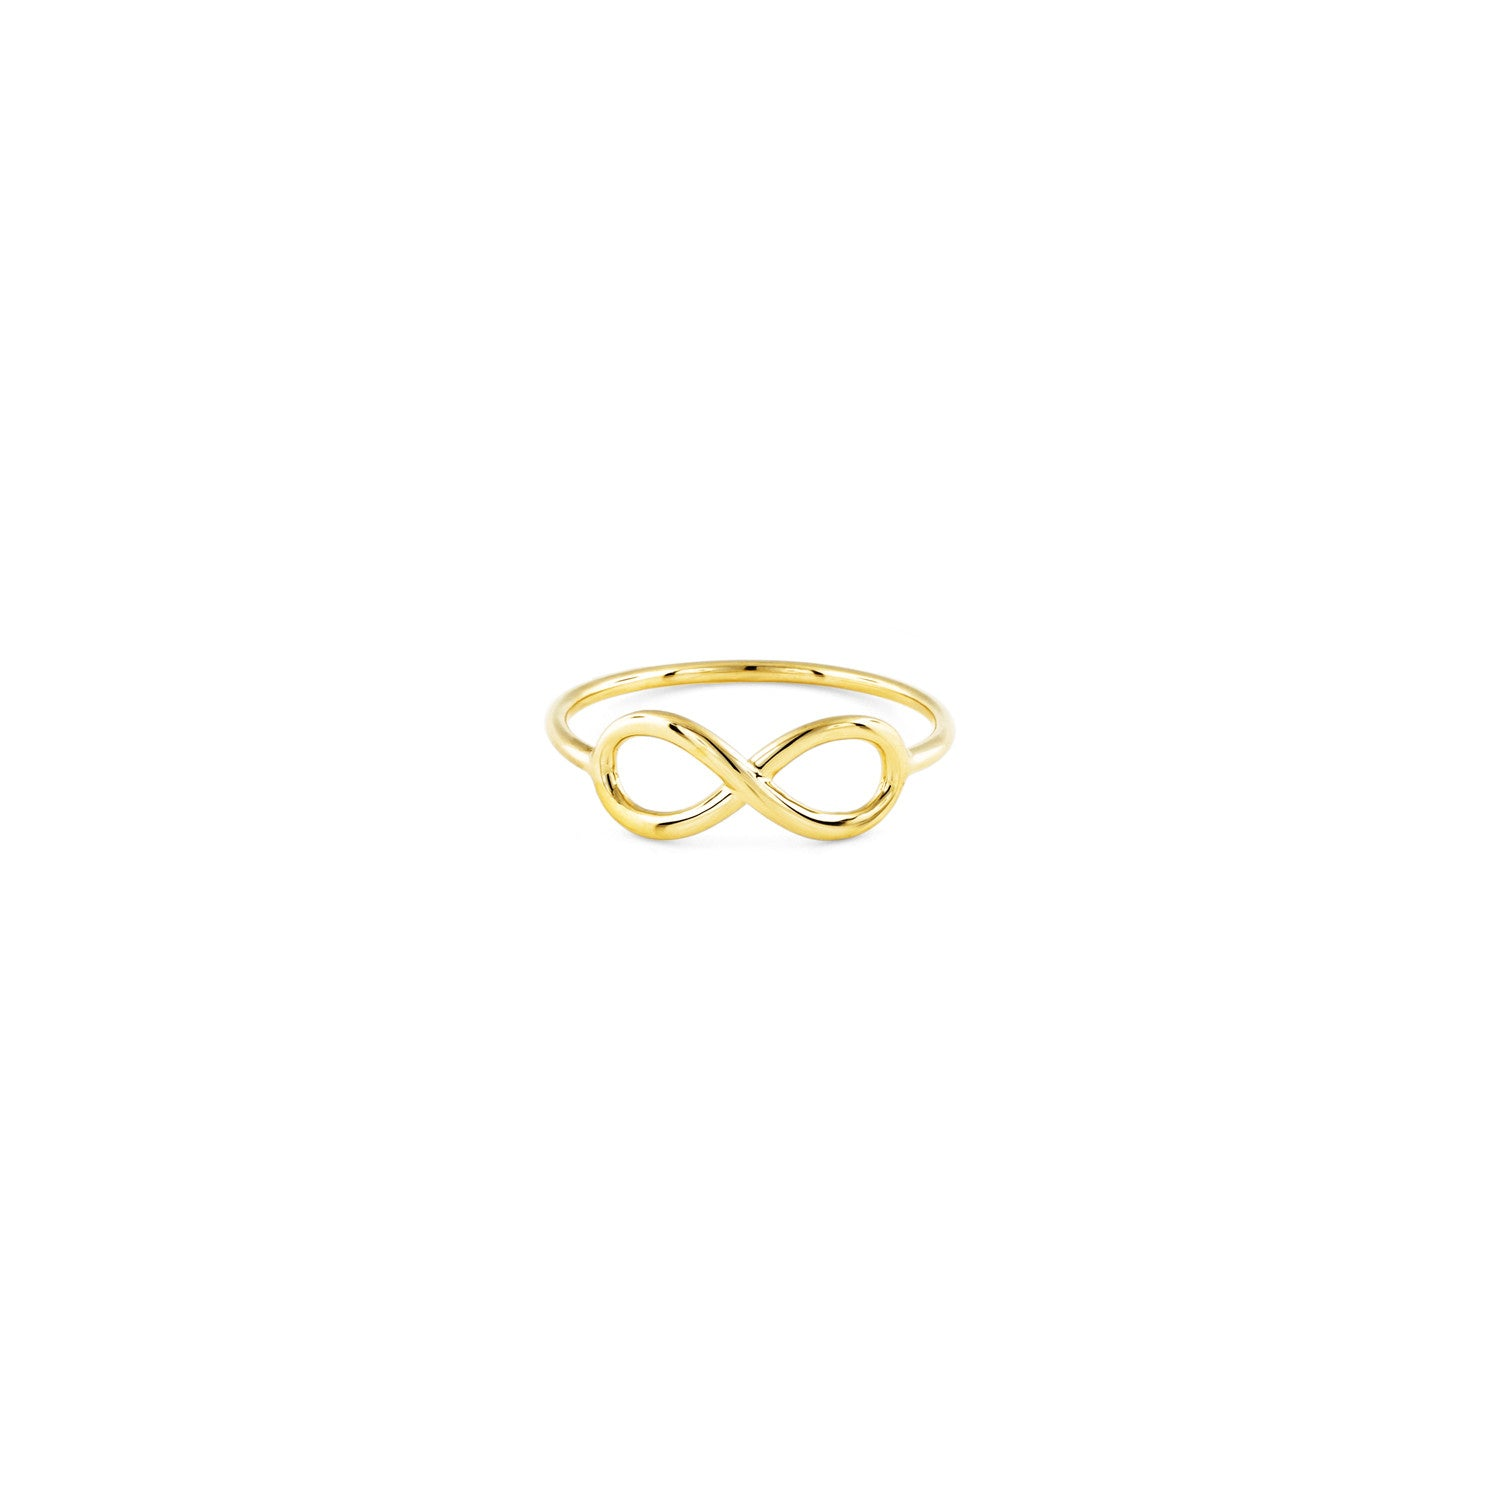 Gold infinity signs women's charm ring